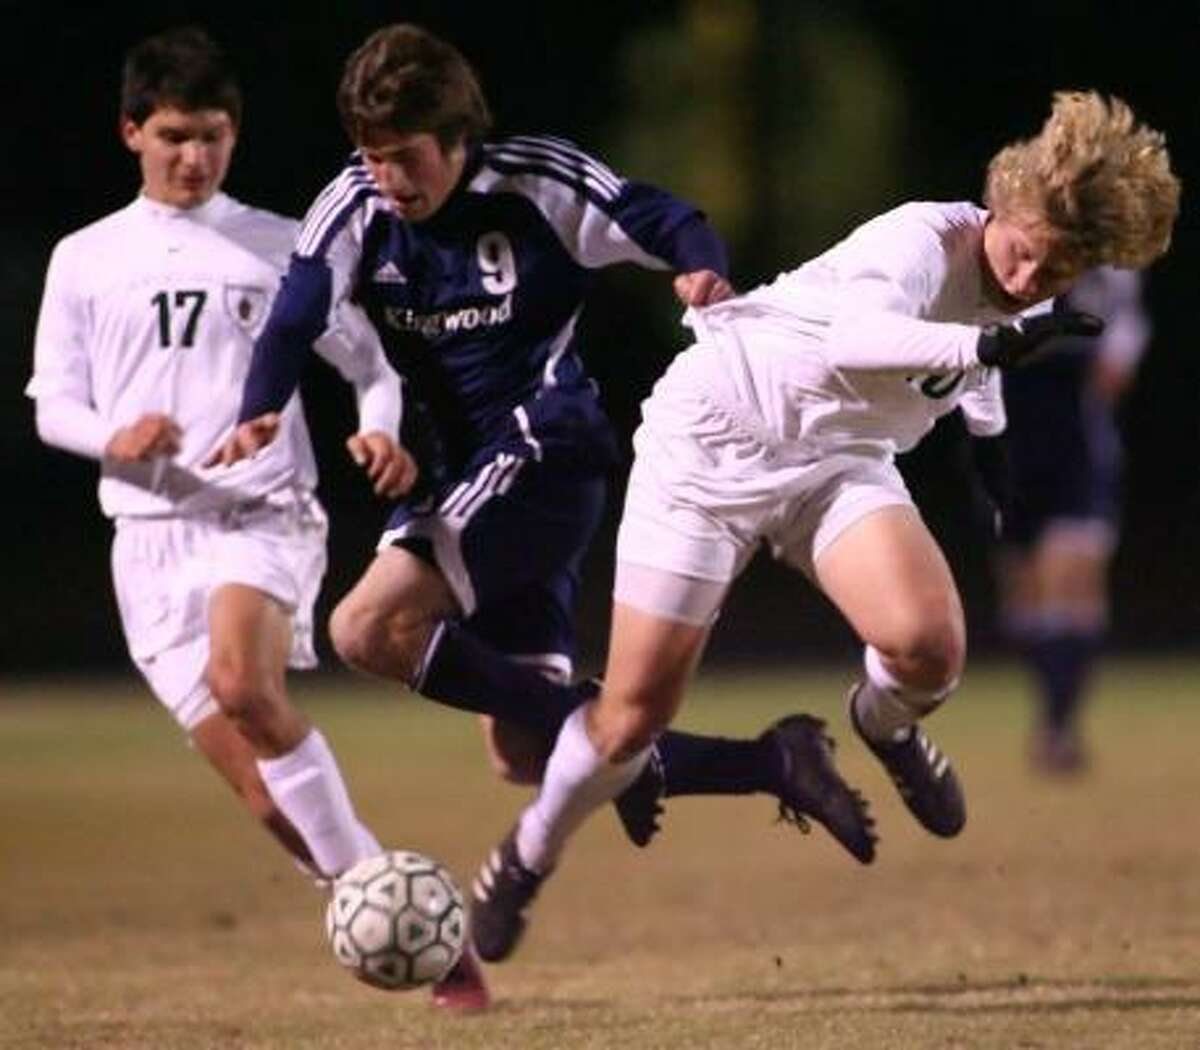 Kingwood's Vinnie Martinelli (9) tries to get past The Woodlands' Conner Mowery (right) and Andrew Norman during their match Friday night at The Woodlands High School.